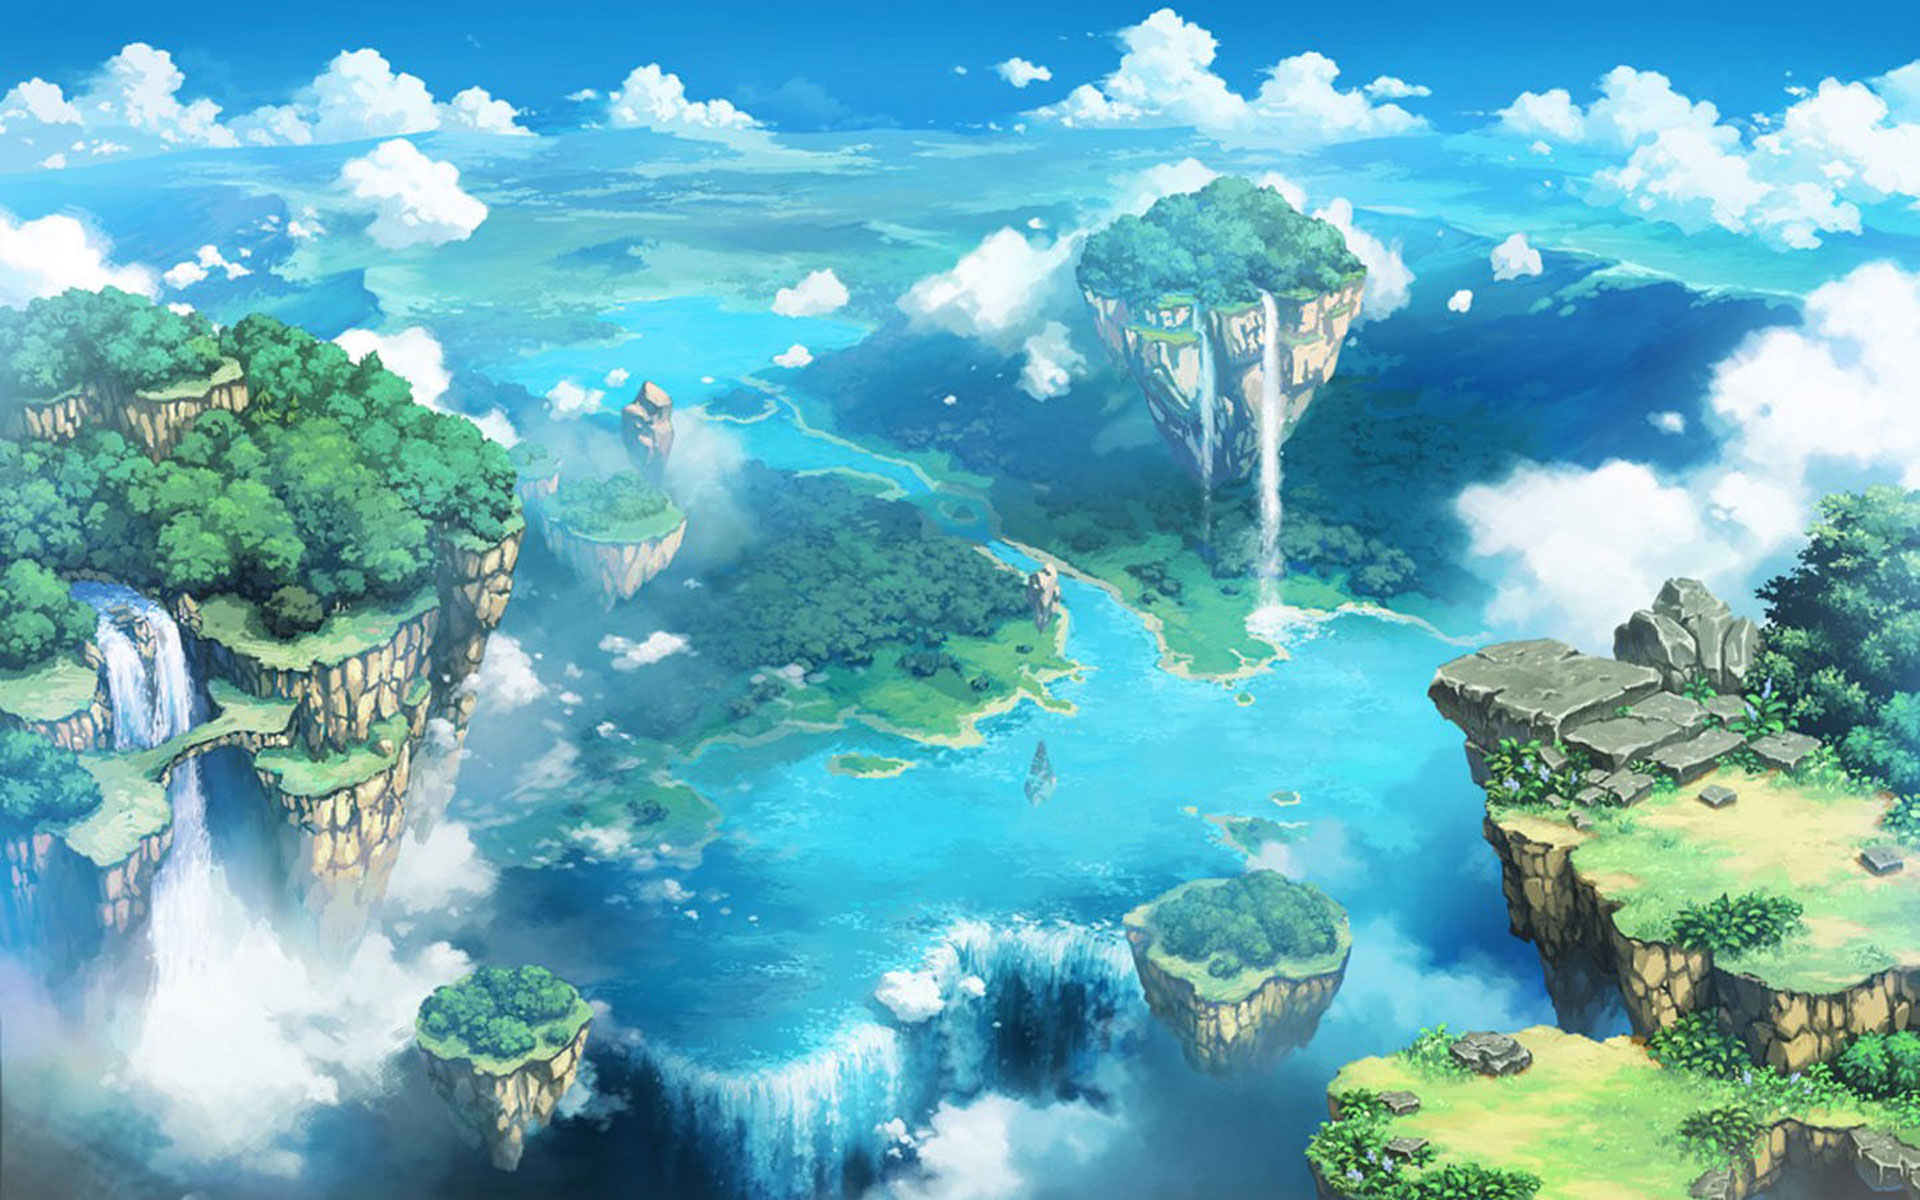 Anime Landscape Wallpaper Hd Pixelstalk Net